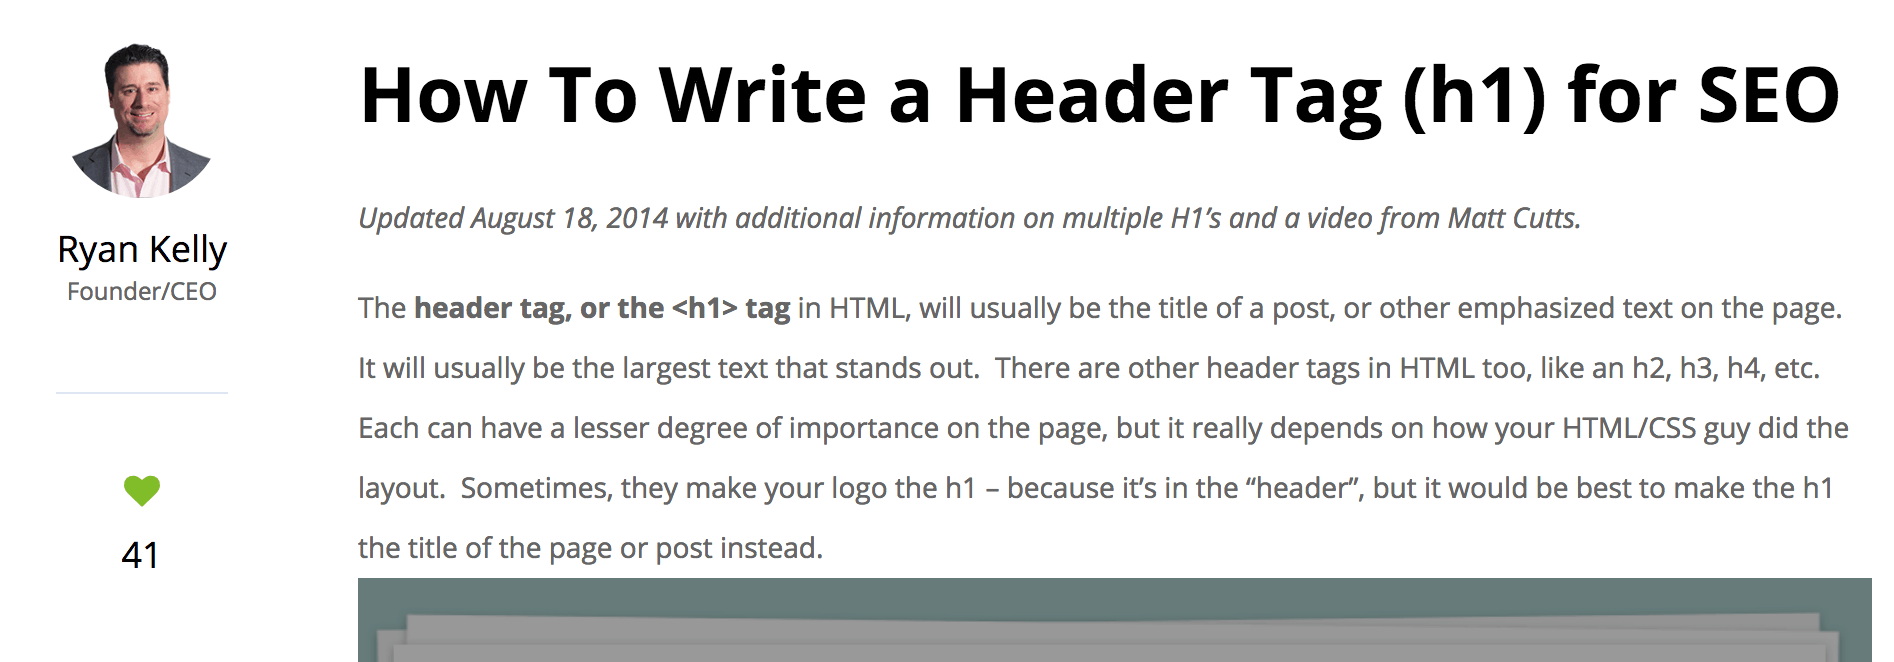 "Résultat de recherche d'images pour ""how to write header tag for seo"""